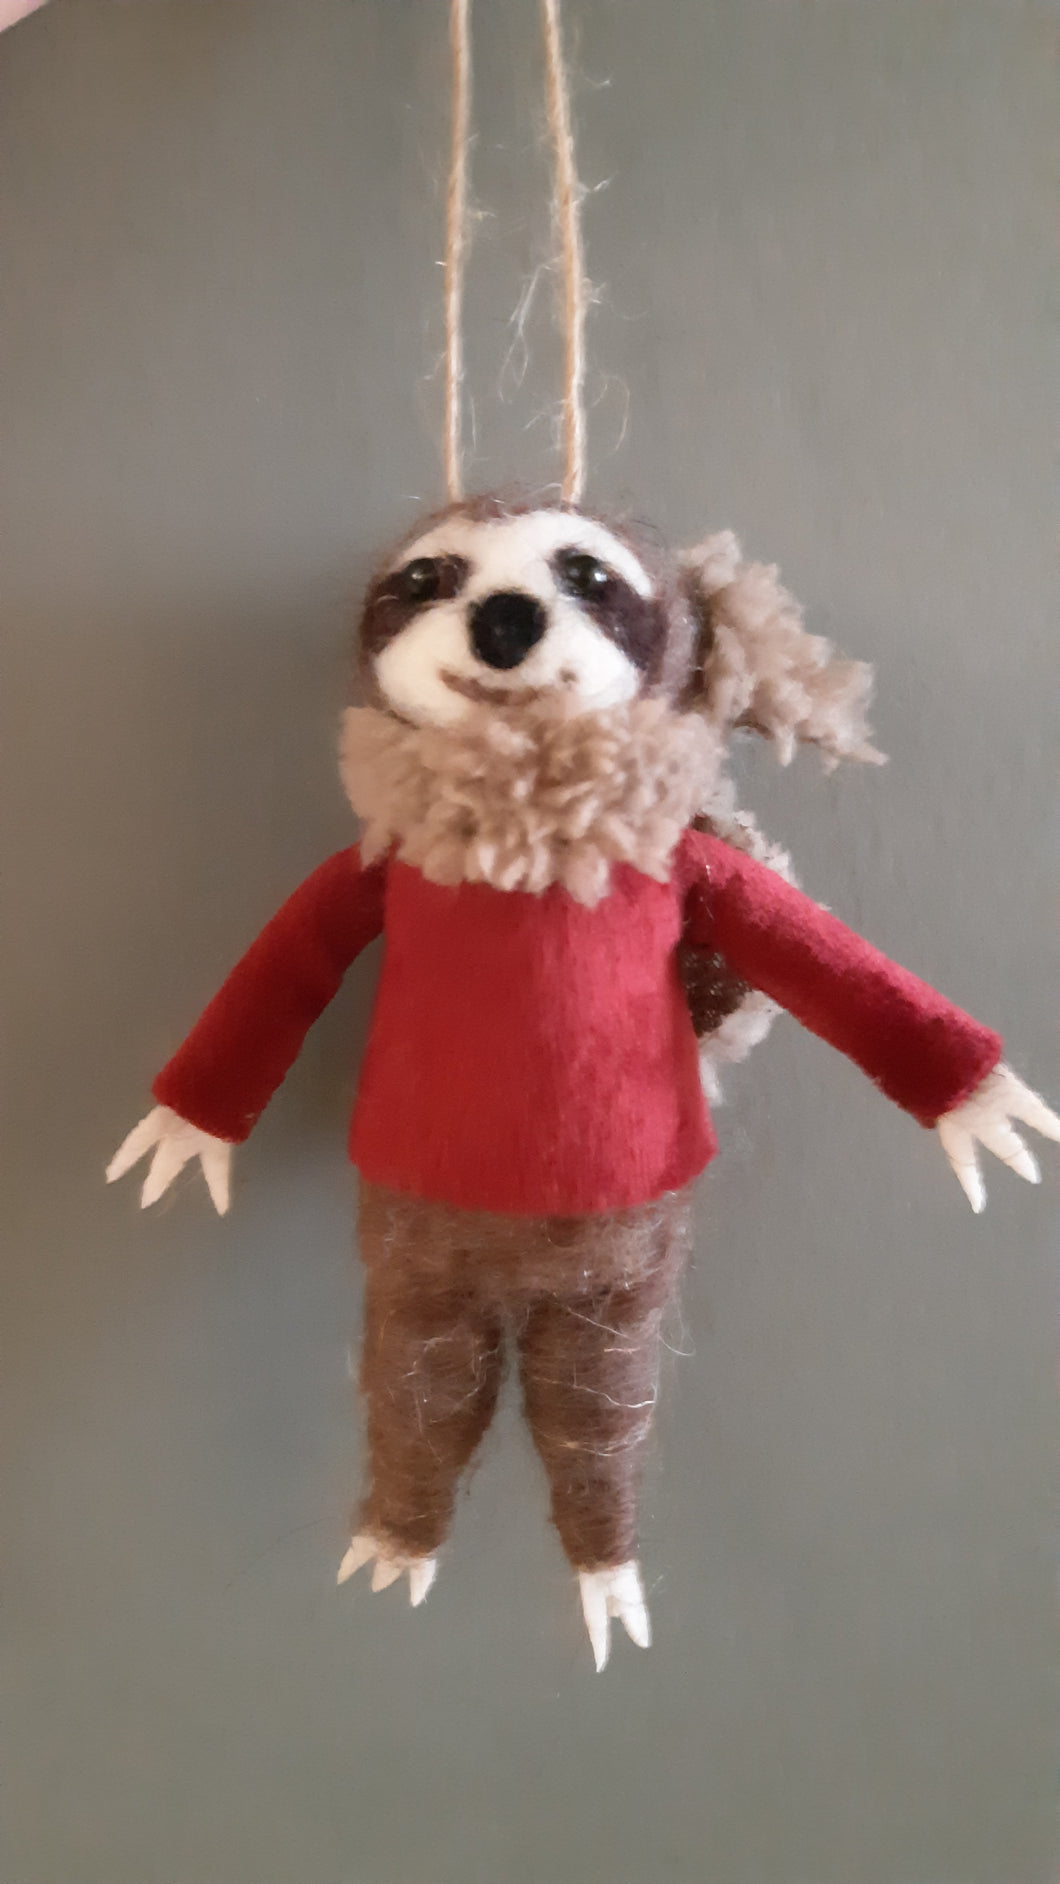 Sloth in a Sweater